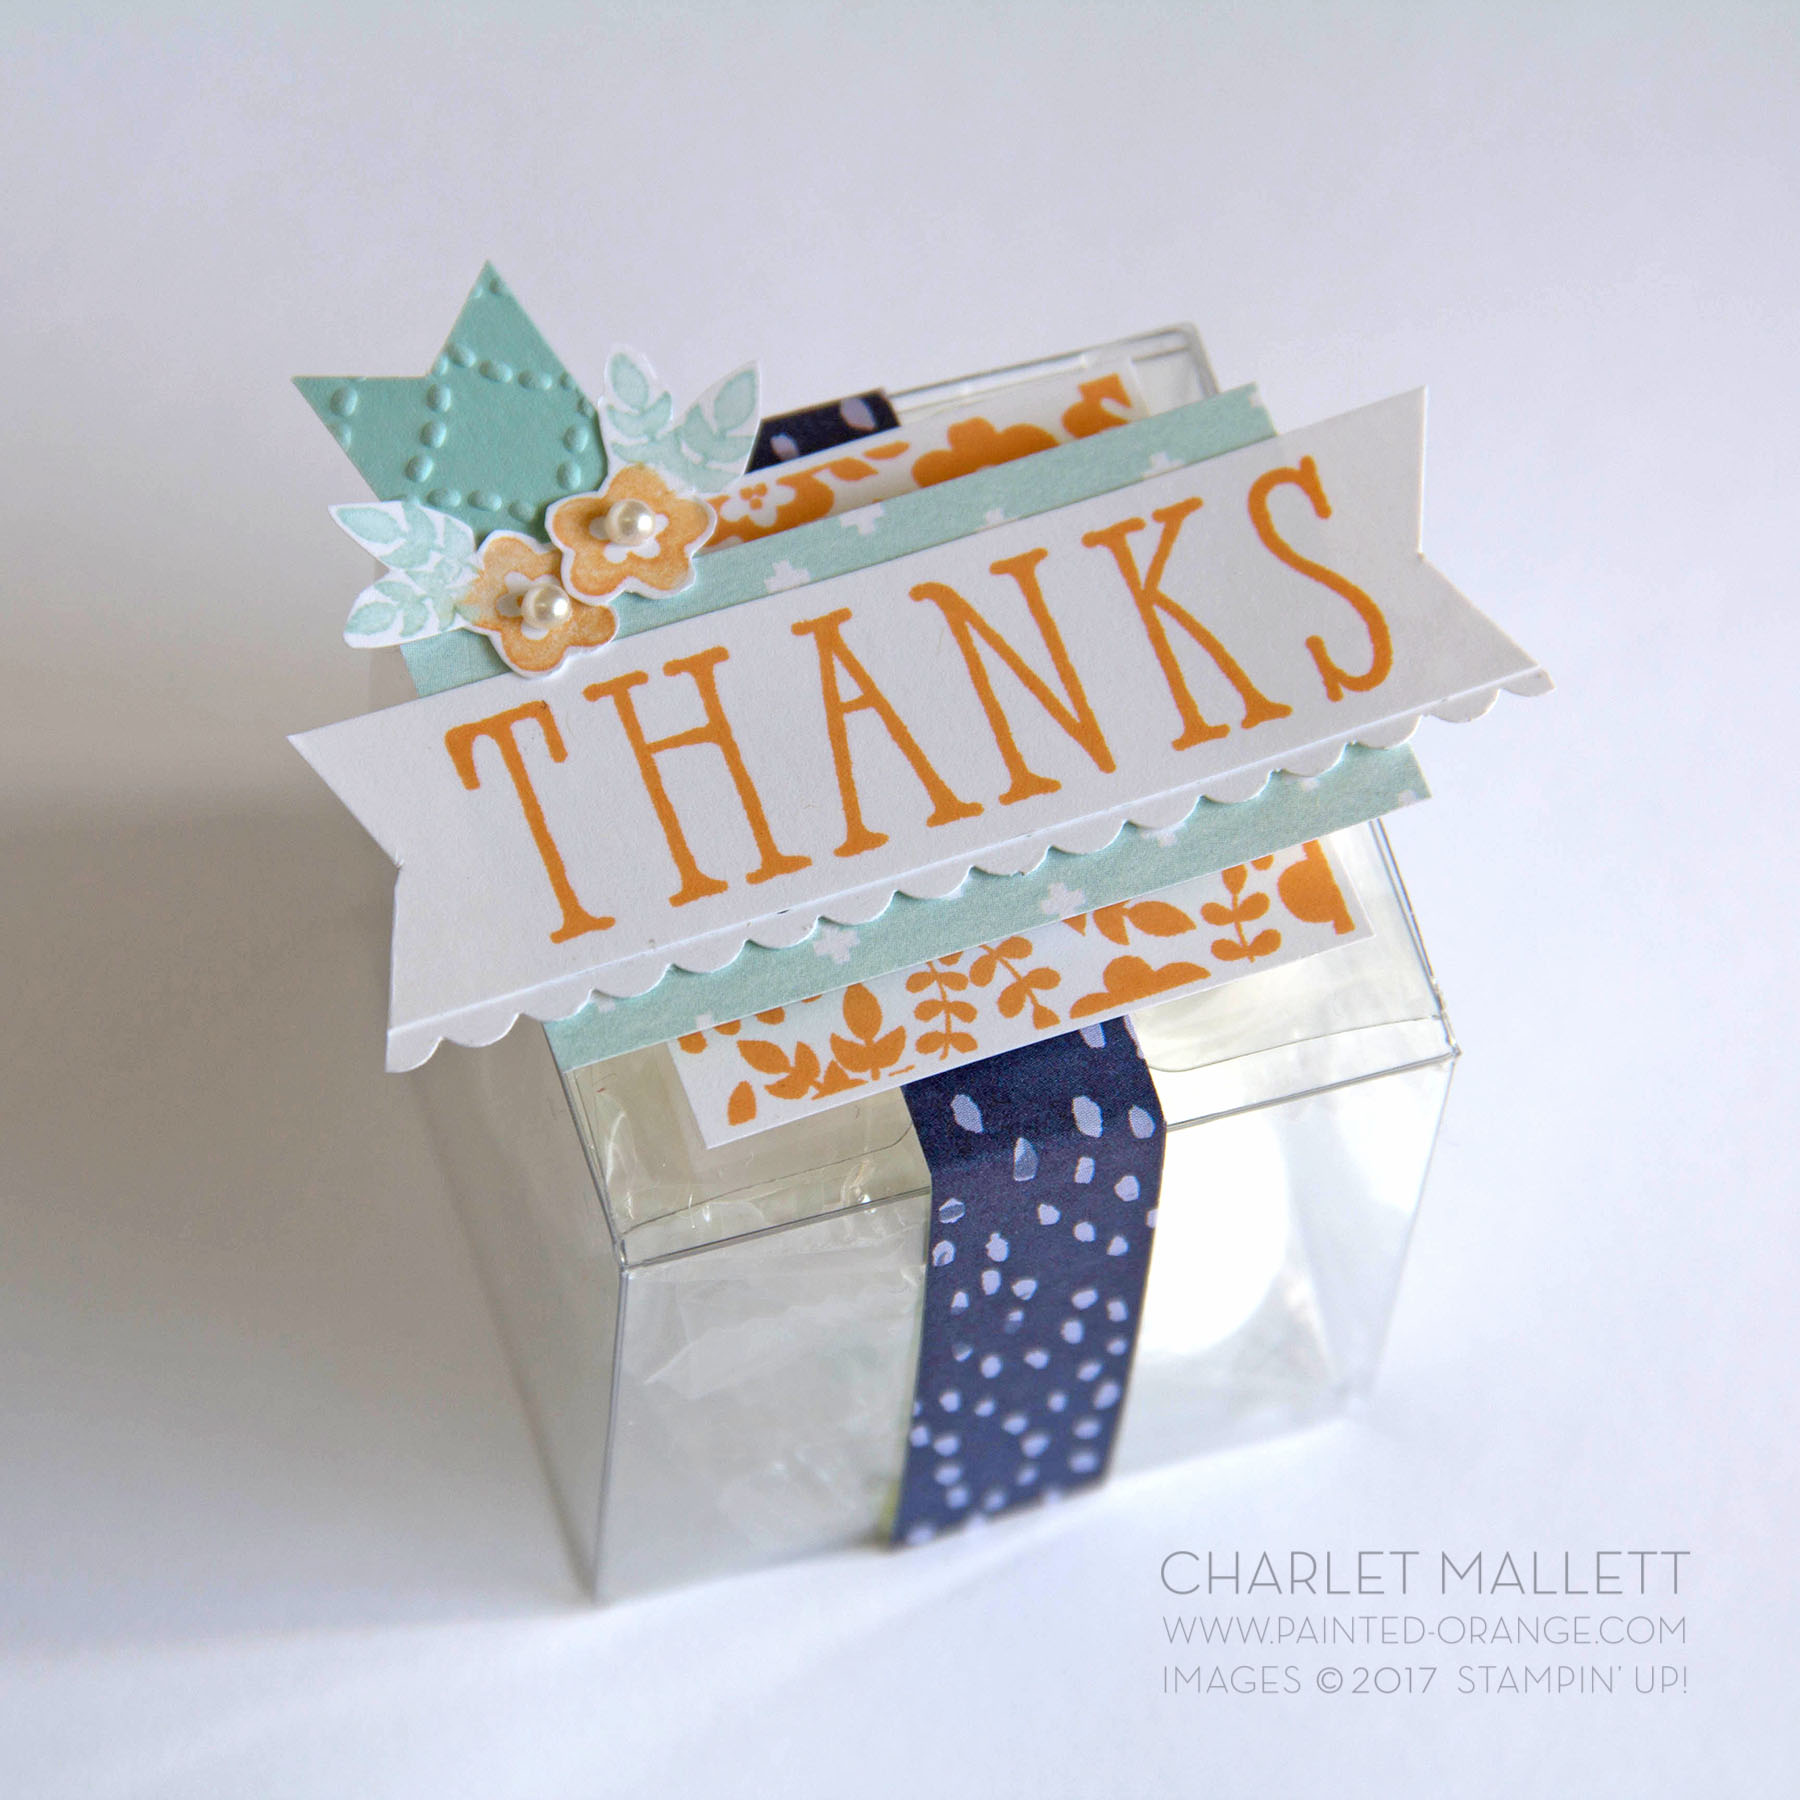 Window Shopping THANKS treat box. Charlet Mallett, Stampin' Up!